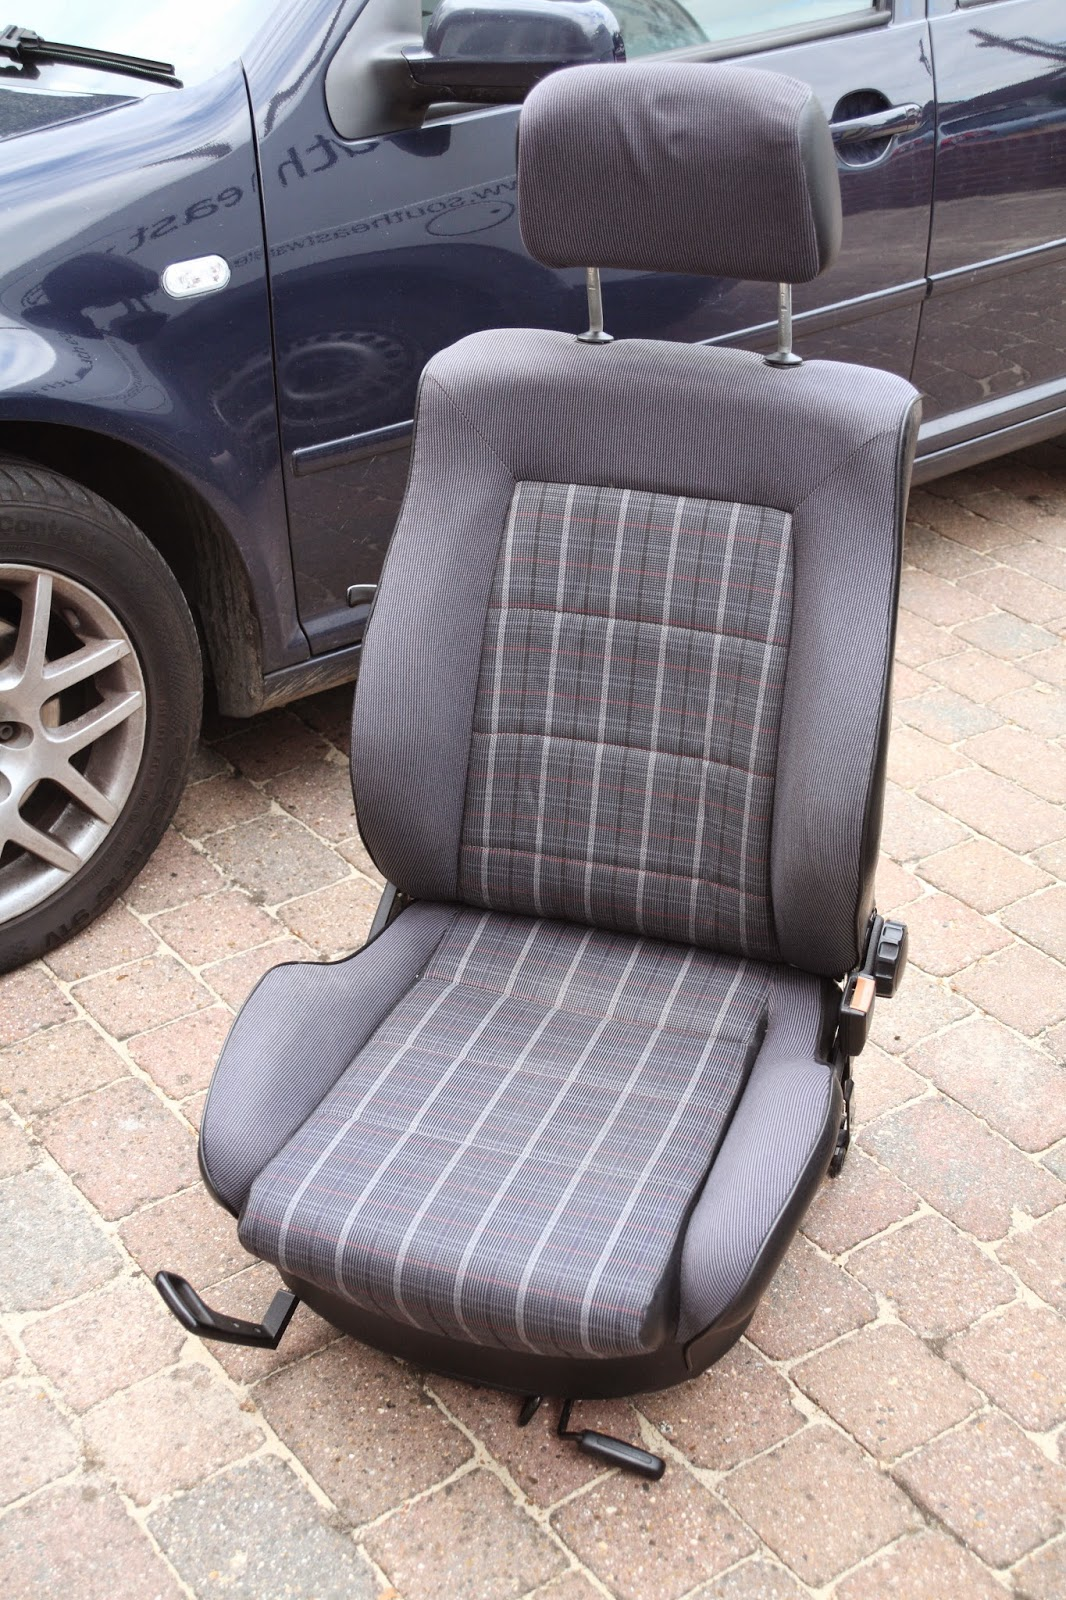 Early Golf GTI seat with front adjustment lever